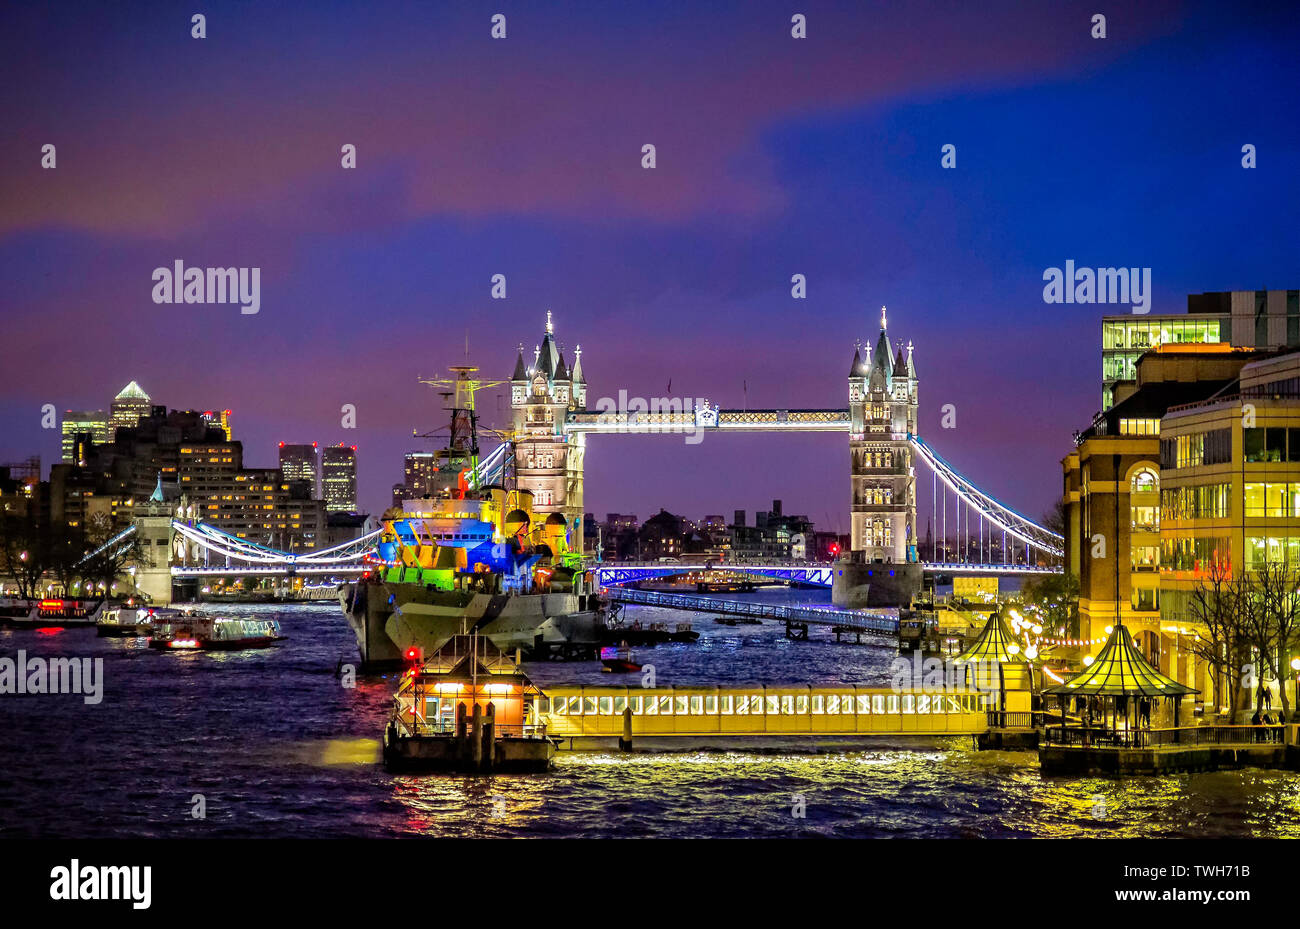 HMS Belfast and Tower Bridge on The River Thames lit up at night in London, UK on 16 December 2012 - Stock Image